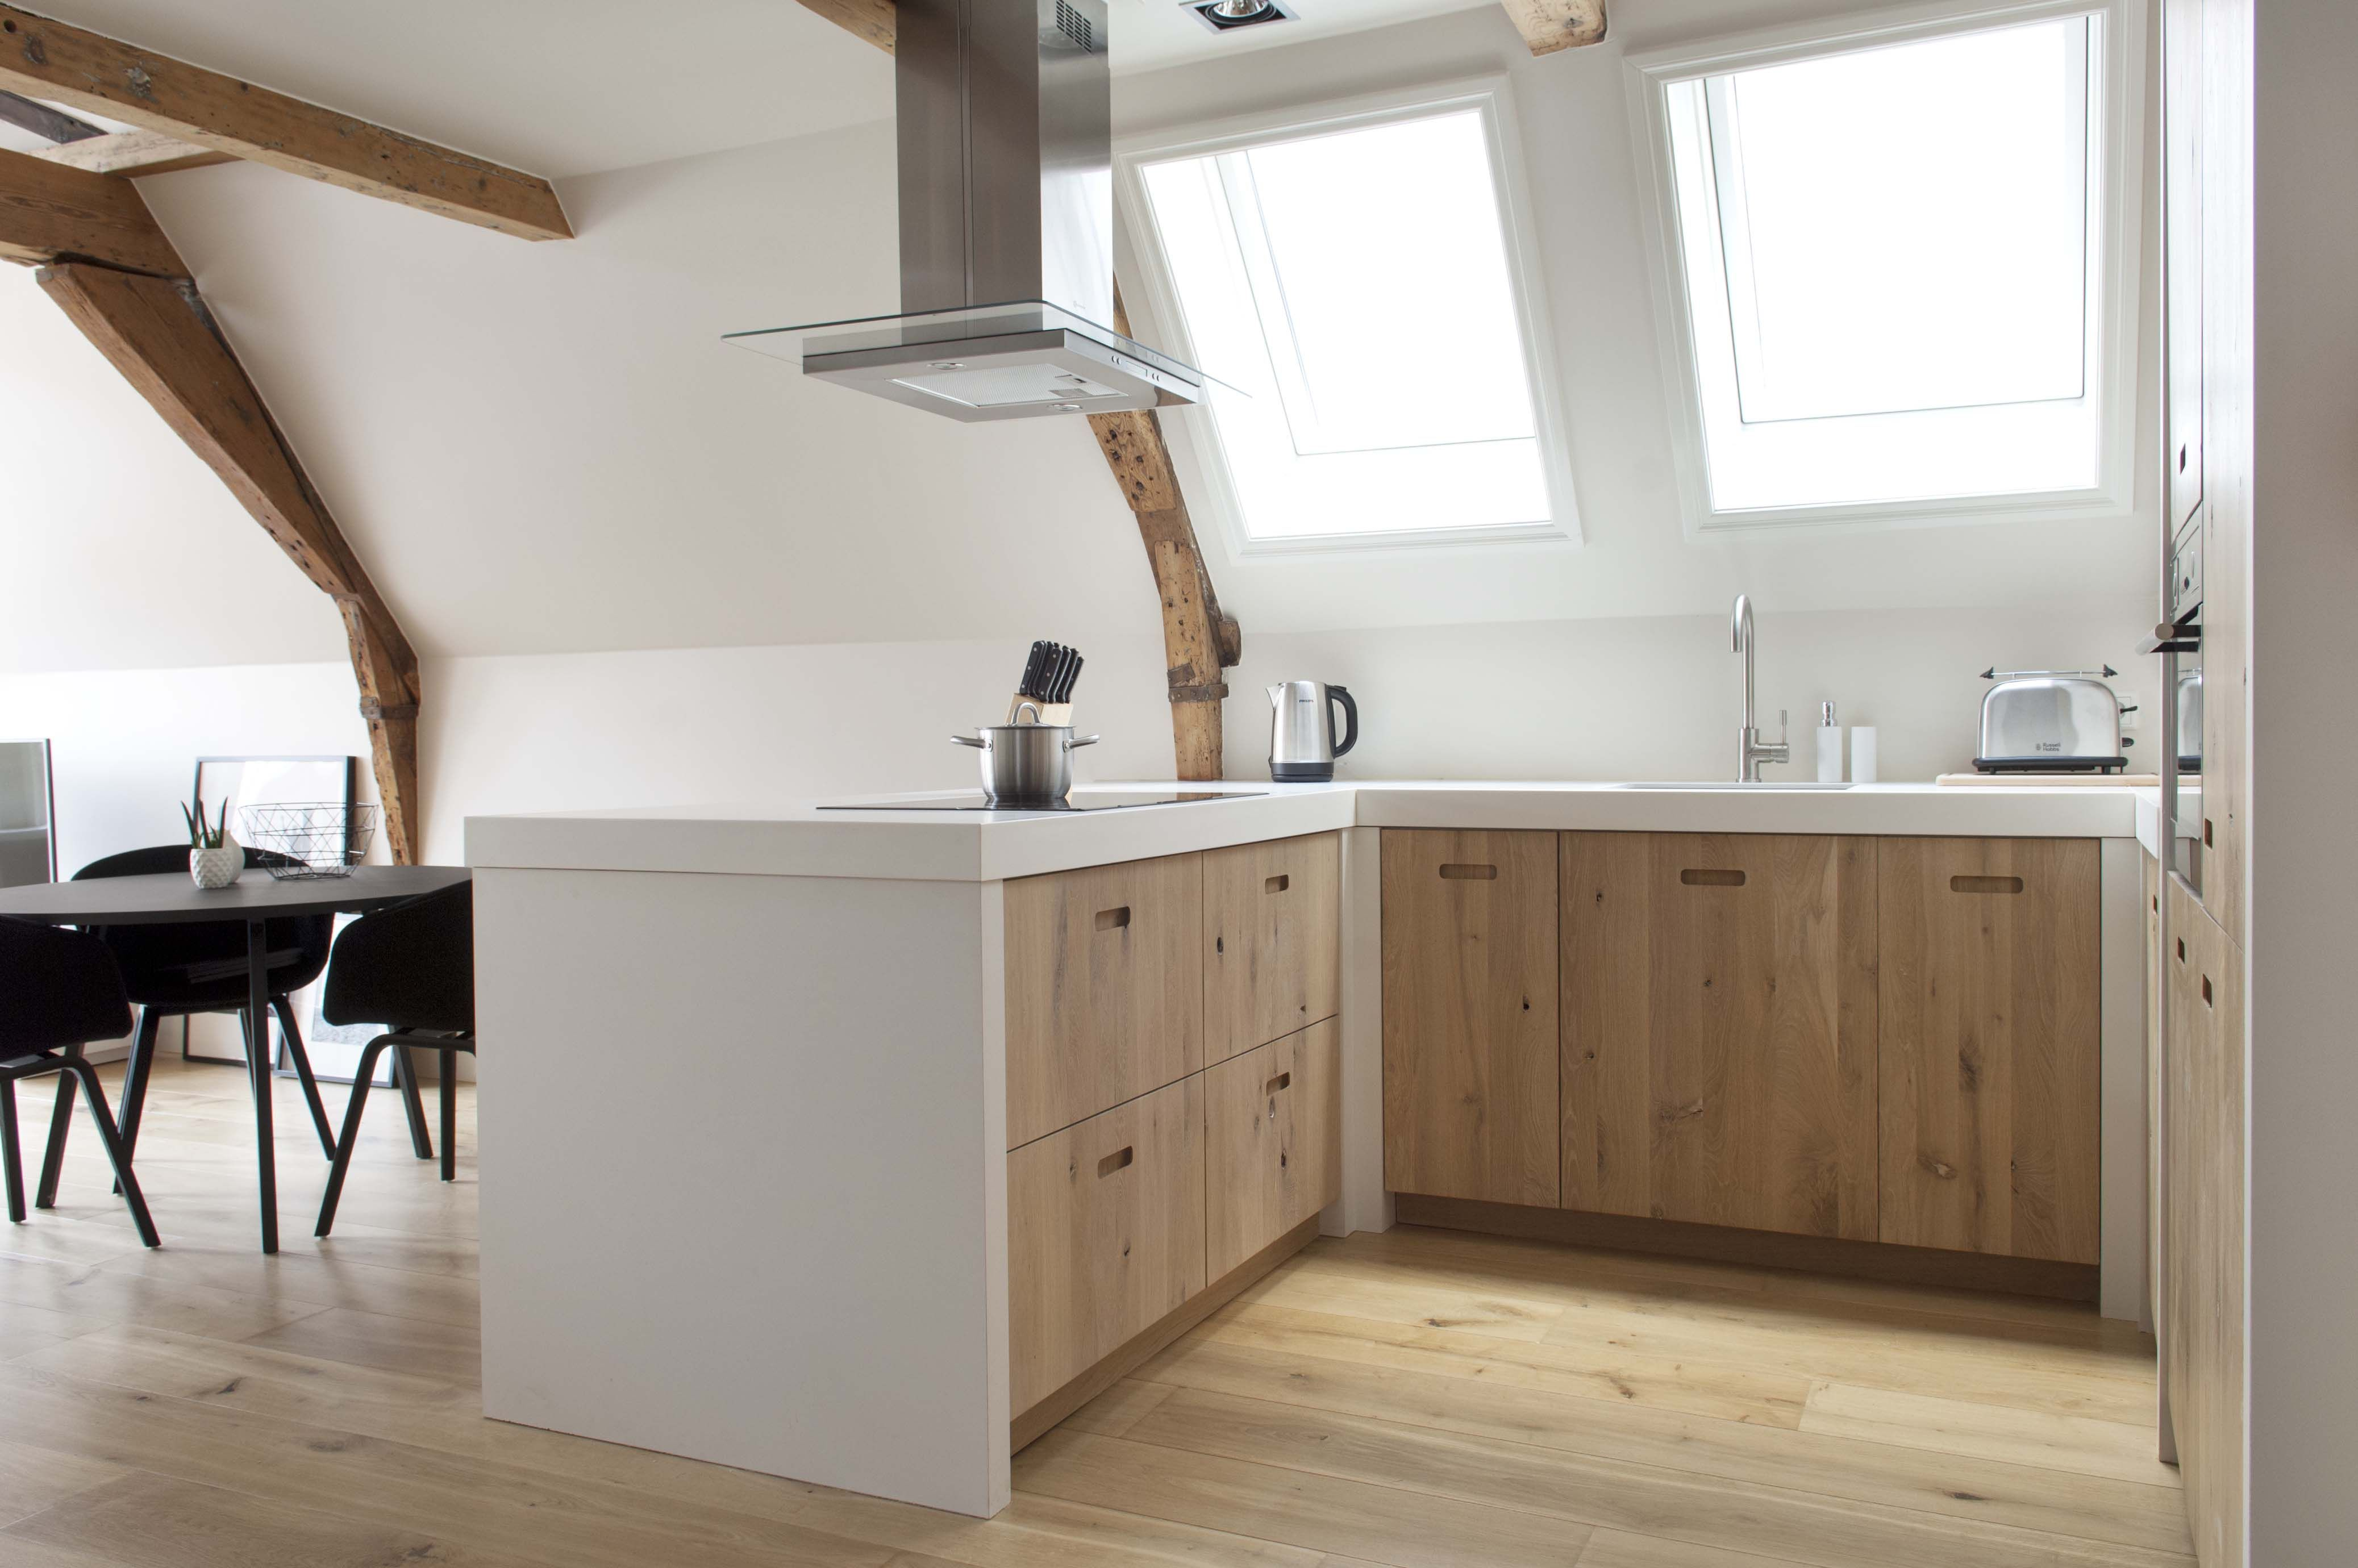 Sijmen interieur | kitchens | Pinterest